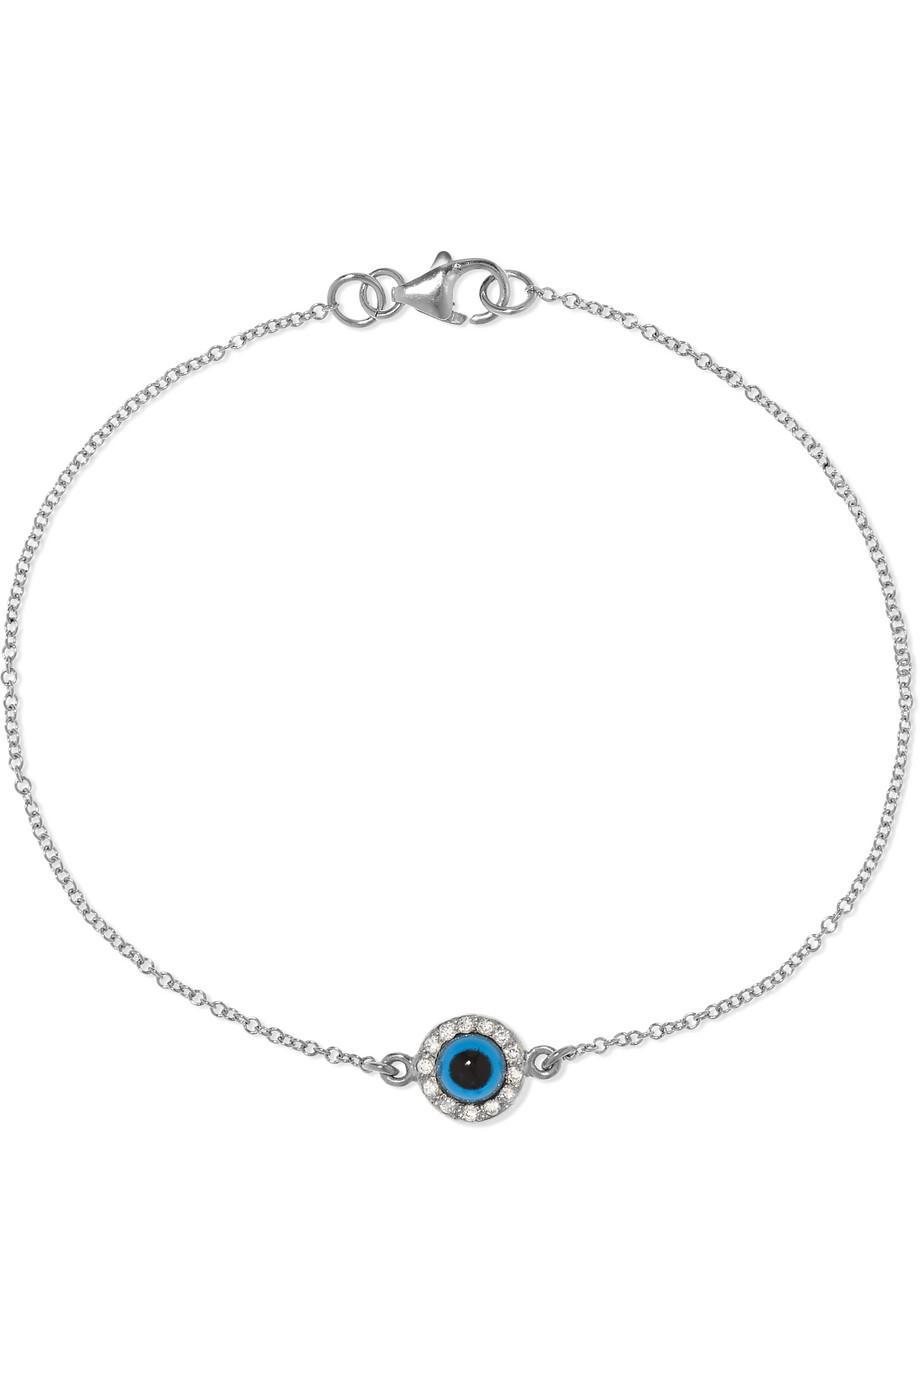 "<br> <br> <strong>Ileana Makri</strong> Double Eye White Gold, Diamond and Glass Bracelet, $, available at <a href=""https://go.skimresources.com/?id=30283X879131&url=https%3A%2F%2Fwww.net-a-porter.com%2Fus%2Fen%2Fproduct%2F1137965%2FIleana_Makri%2Fdouble-eye-18-karat-white-gold-diamond-and-glass-bracelet"" rel=""nofollow noopener"" target=""_blank"" data-ylk=""slk:Net-A-Porter"" class=""link rapid-noclick-resp"">Net-A-Porter</a>"